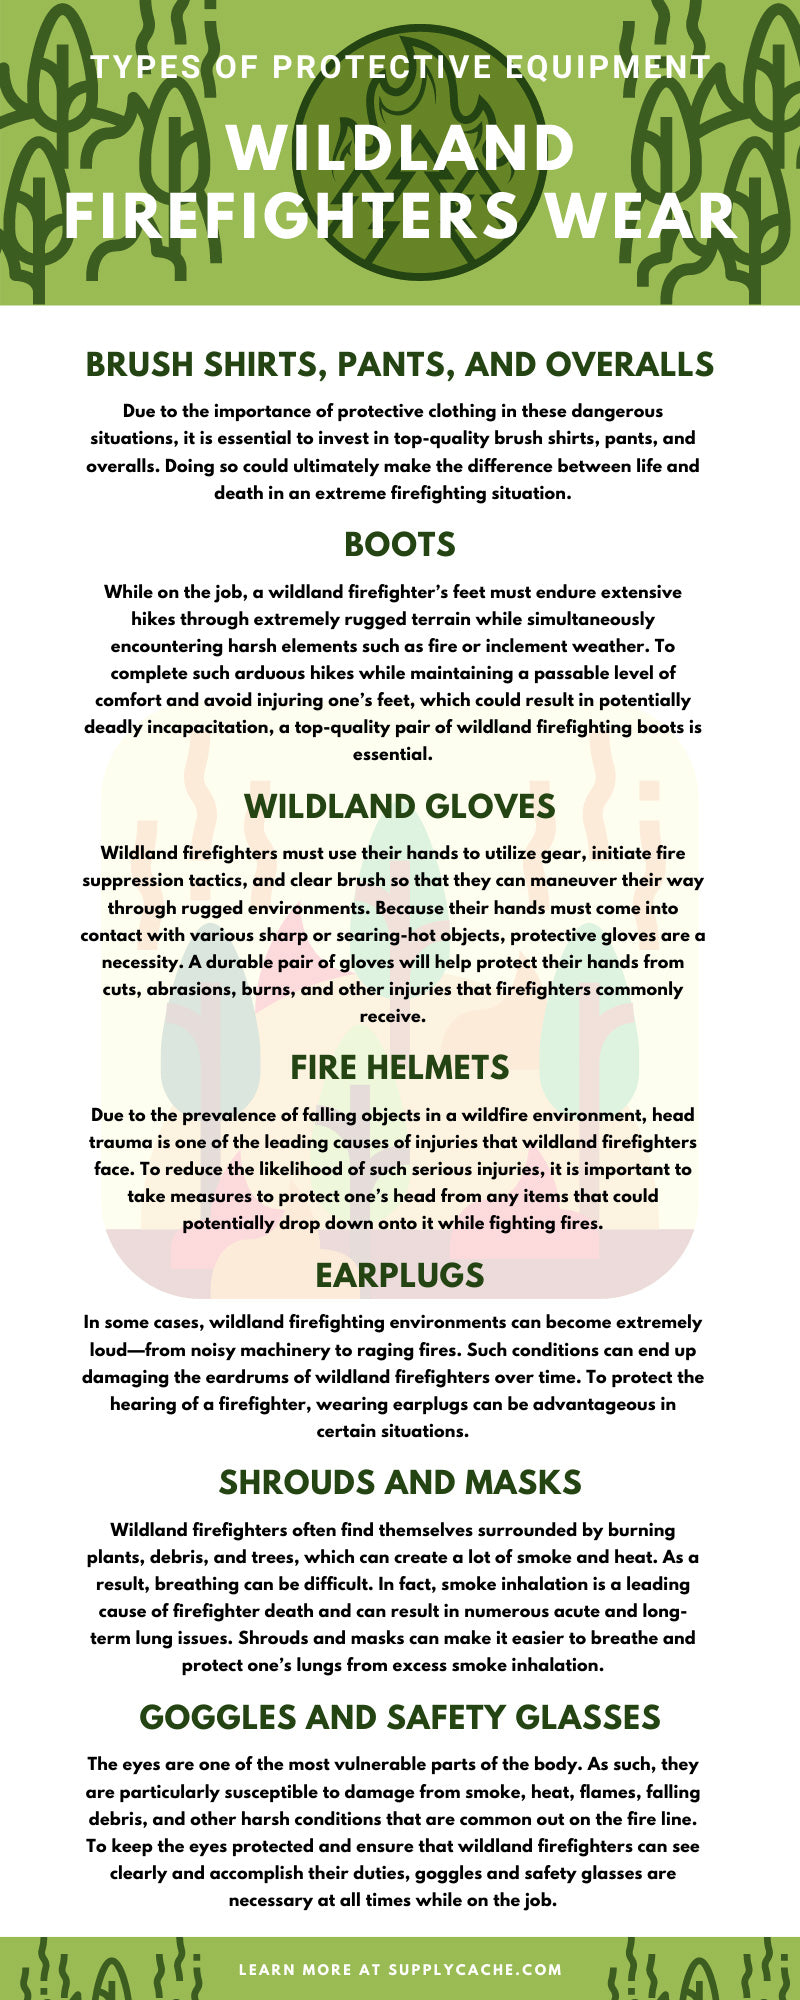 Types of Protective Equipment Wildland Firefighters Wear